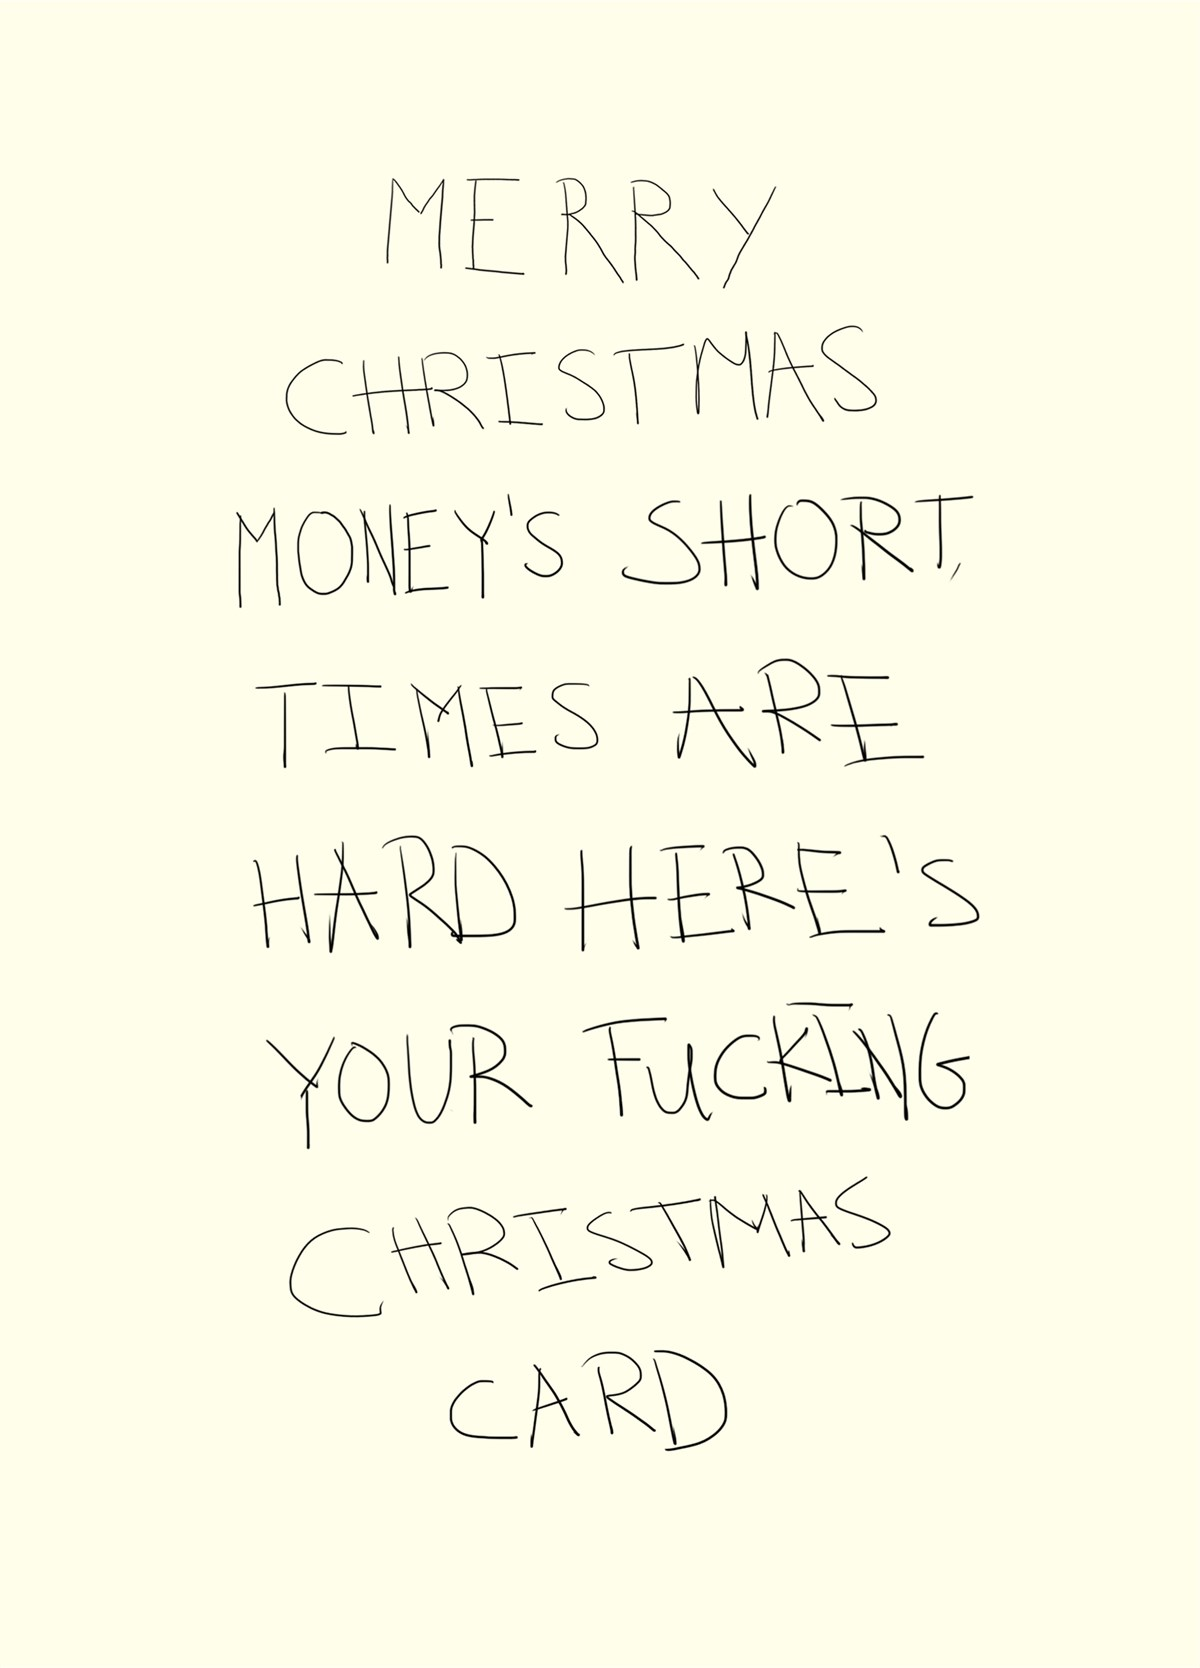 Merry Christmas Writing Images.Merry Christmas Money S Short